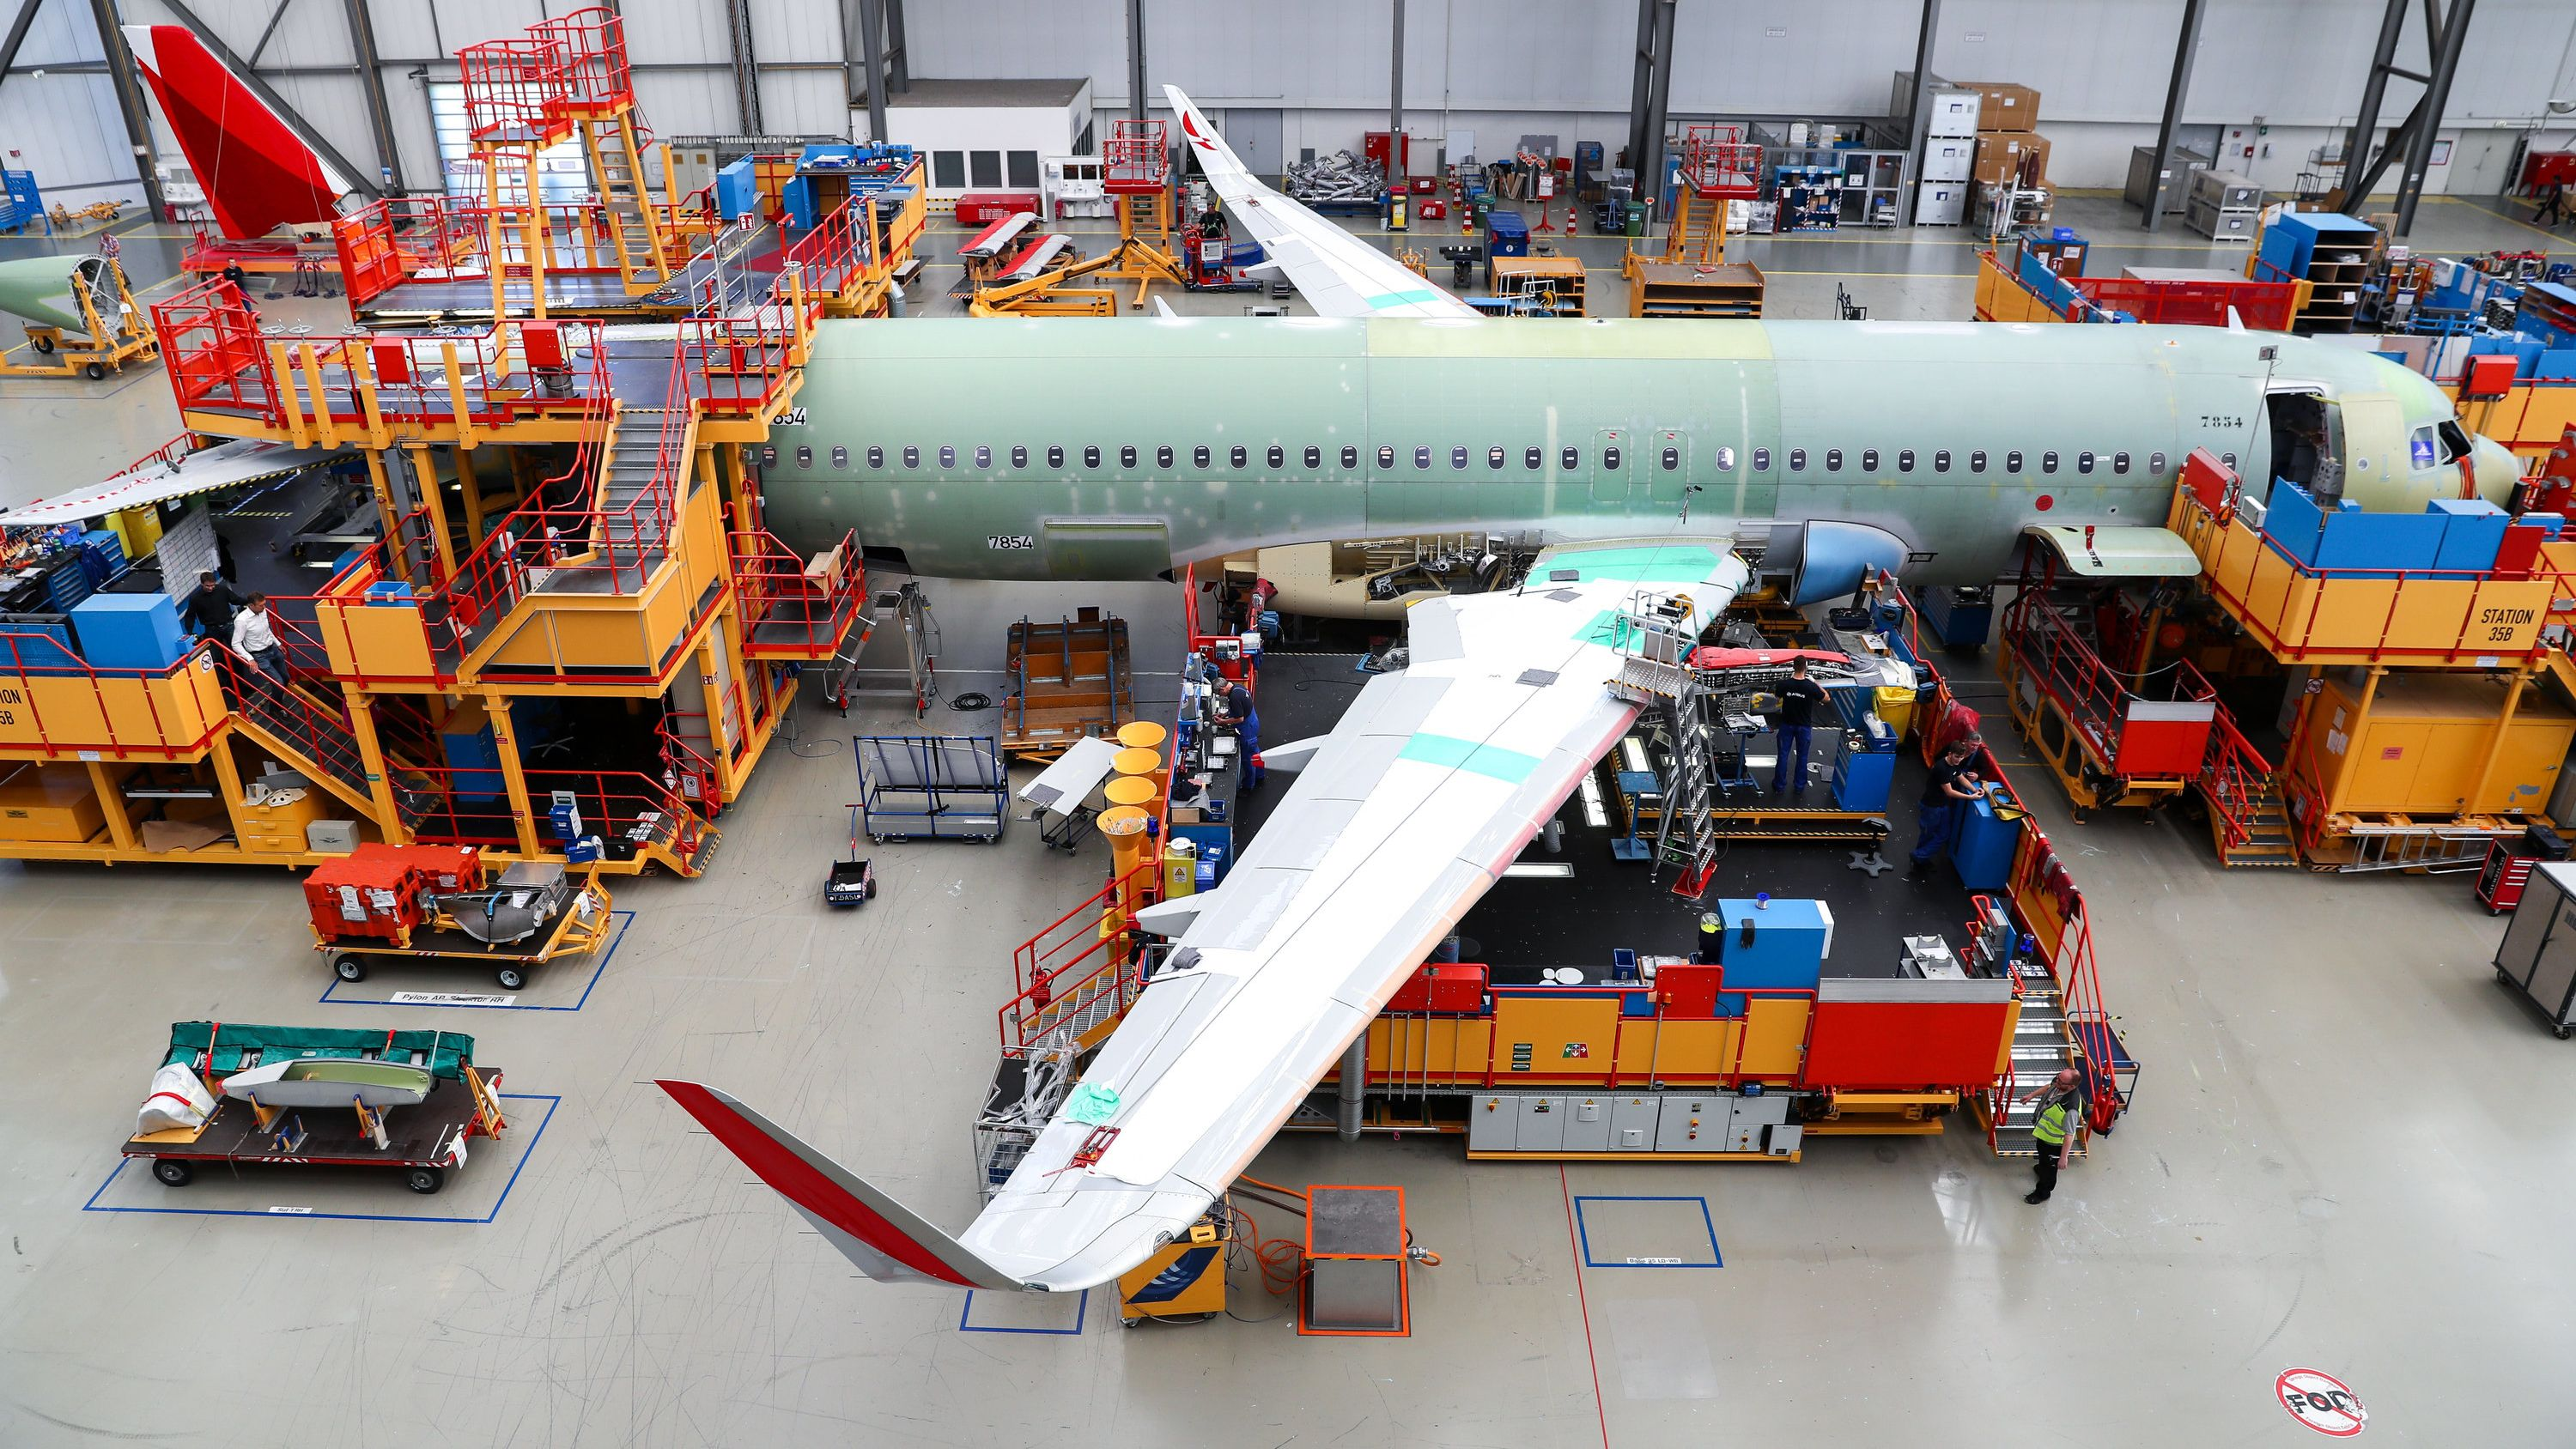 Airbus-Produktion